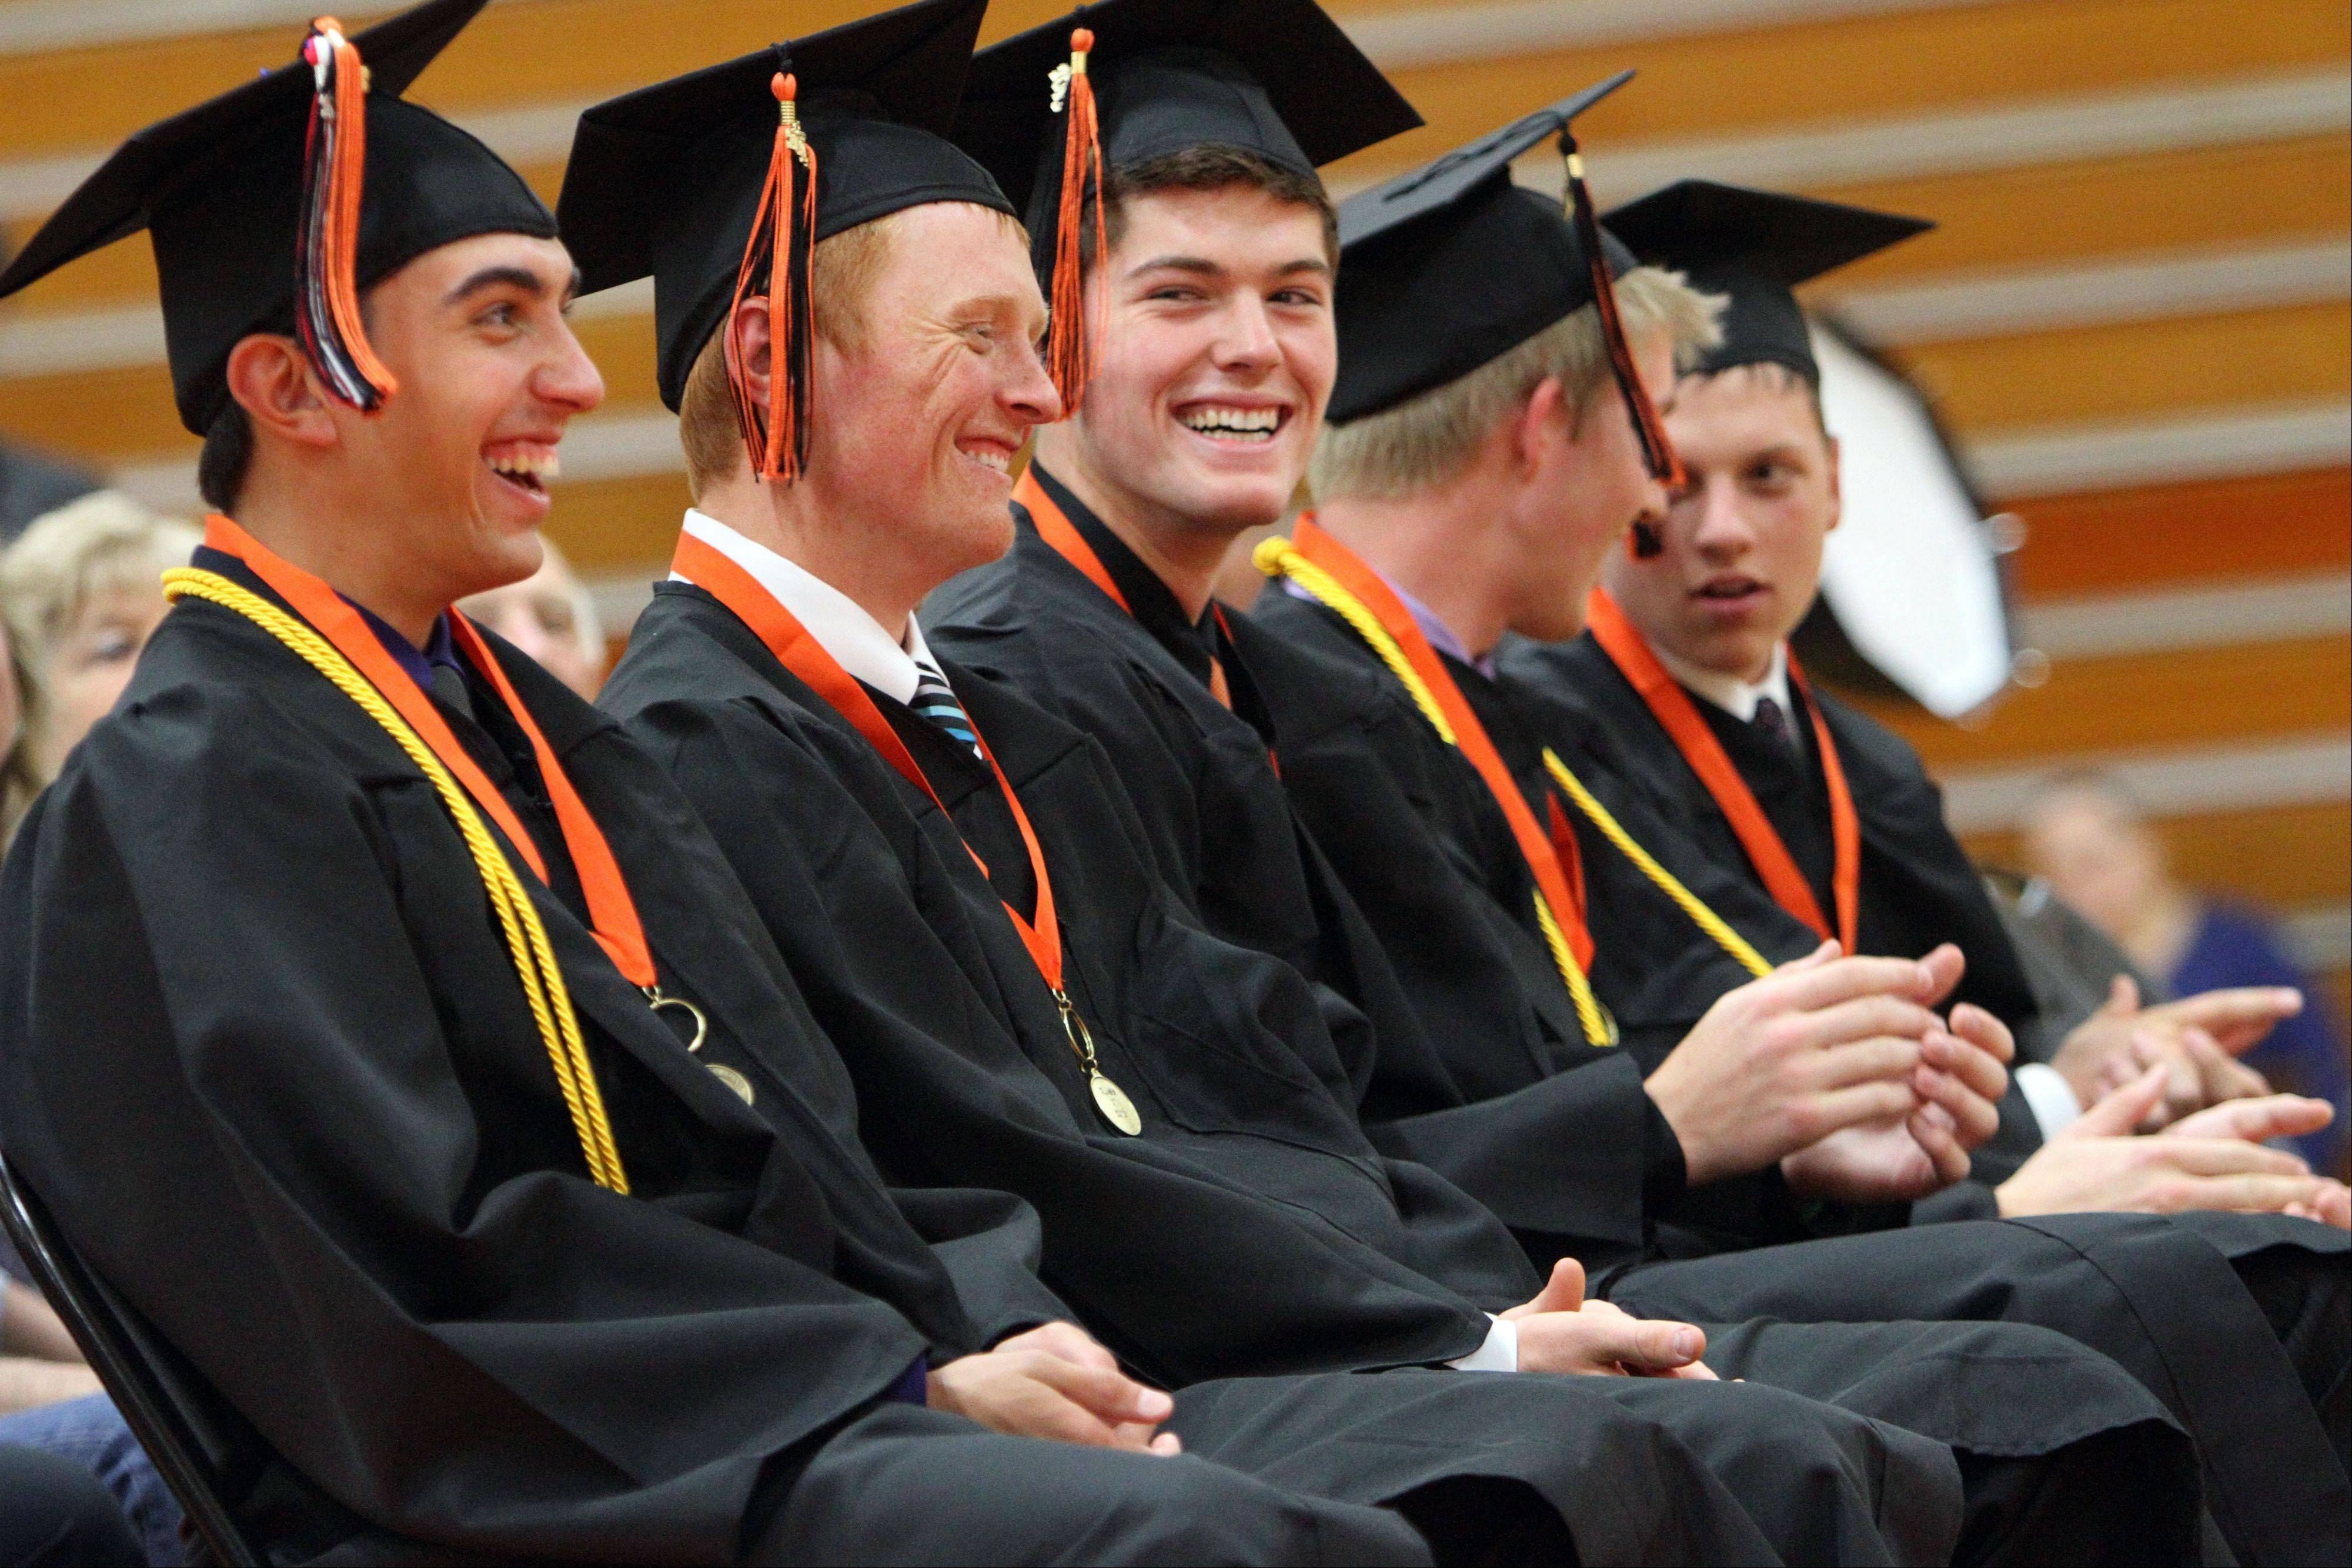 Ten Libertyville High School seniors on the baseball team participate in a special graduation ceremony in the gymnasium Thursday. The team's state semifinal game against St. Charles East High School conflicts with the school's graduation ceremony this evening.